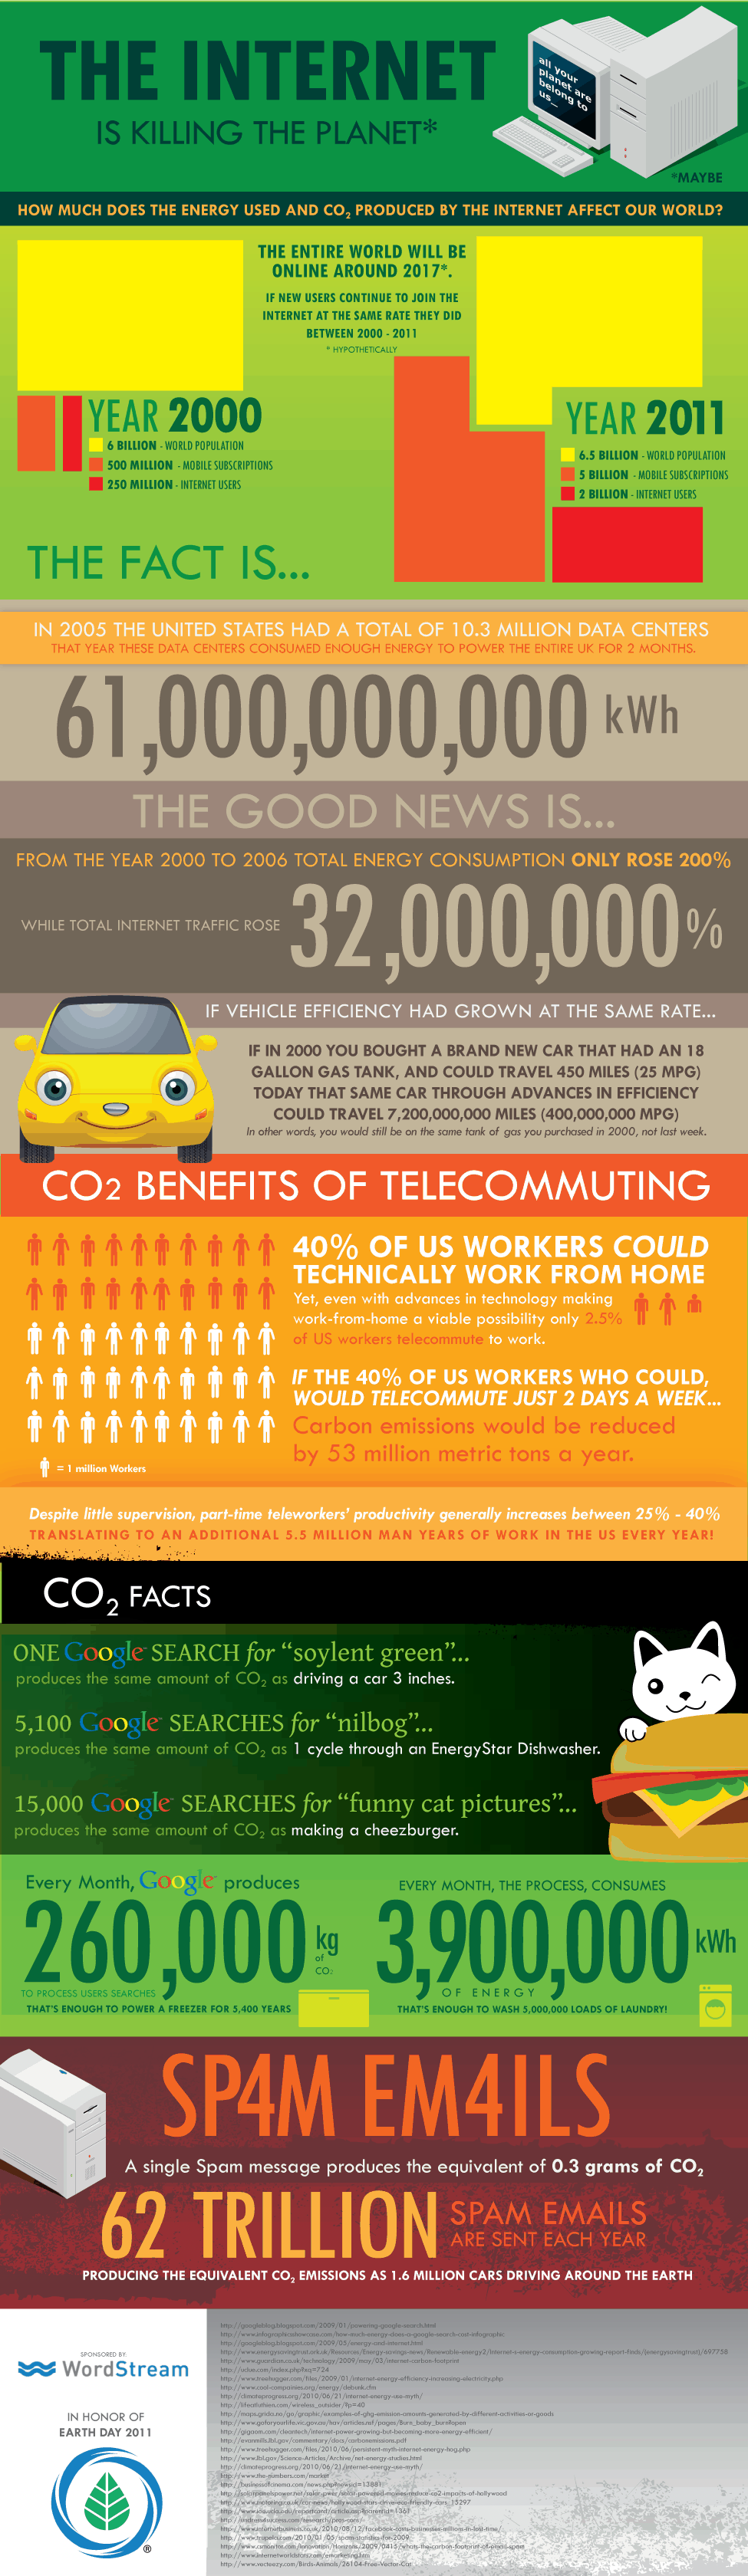 http://dailyinfographic.com/wp-content/uploads/2011/04/earth-day-internet-infographic.png